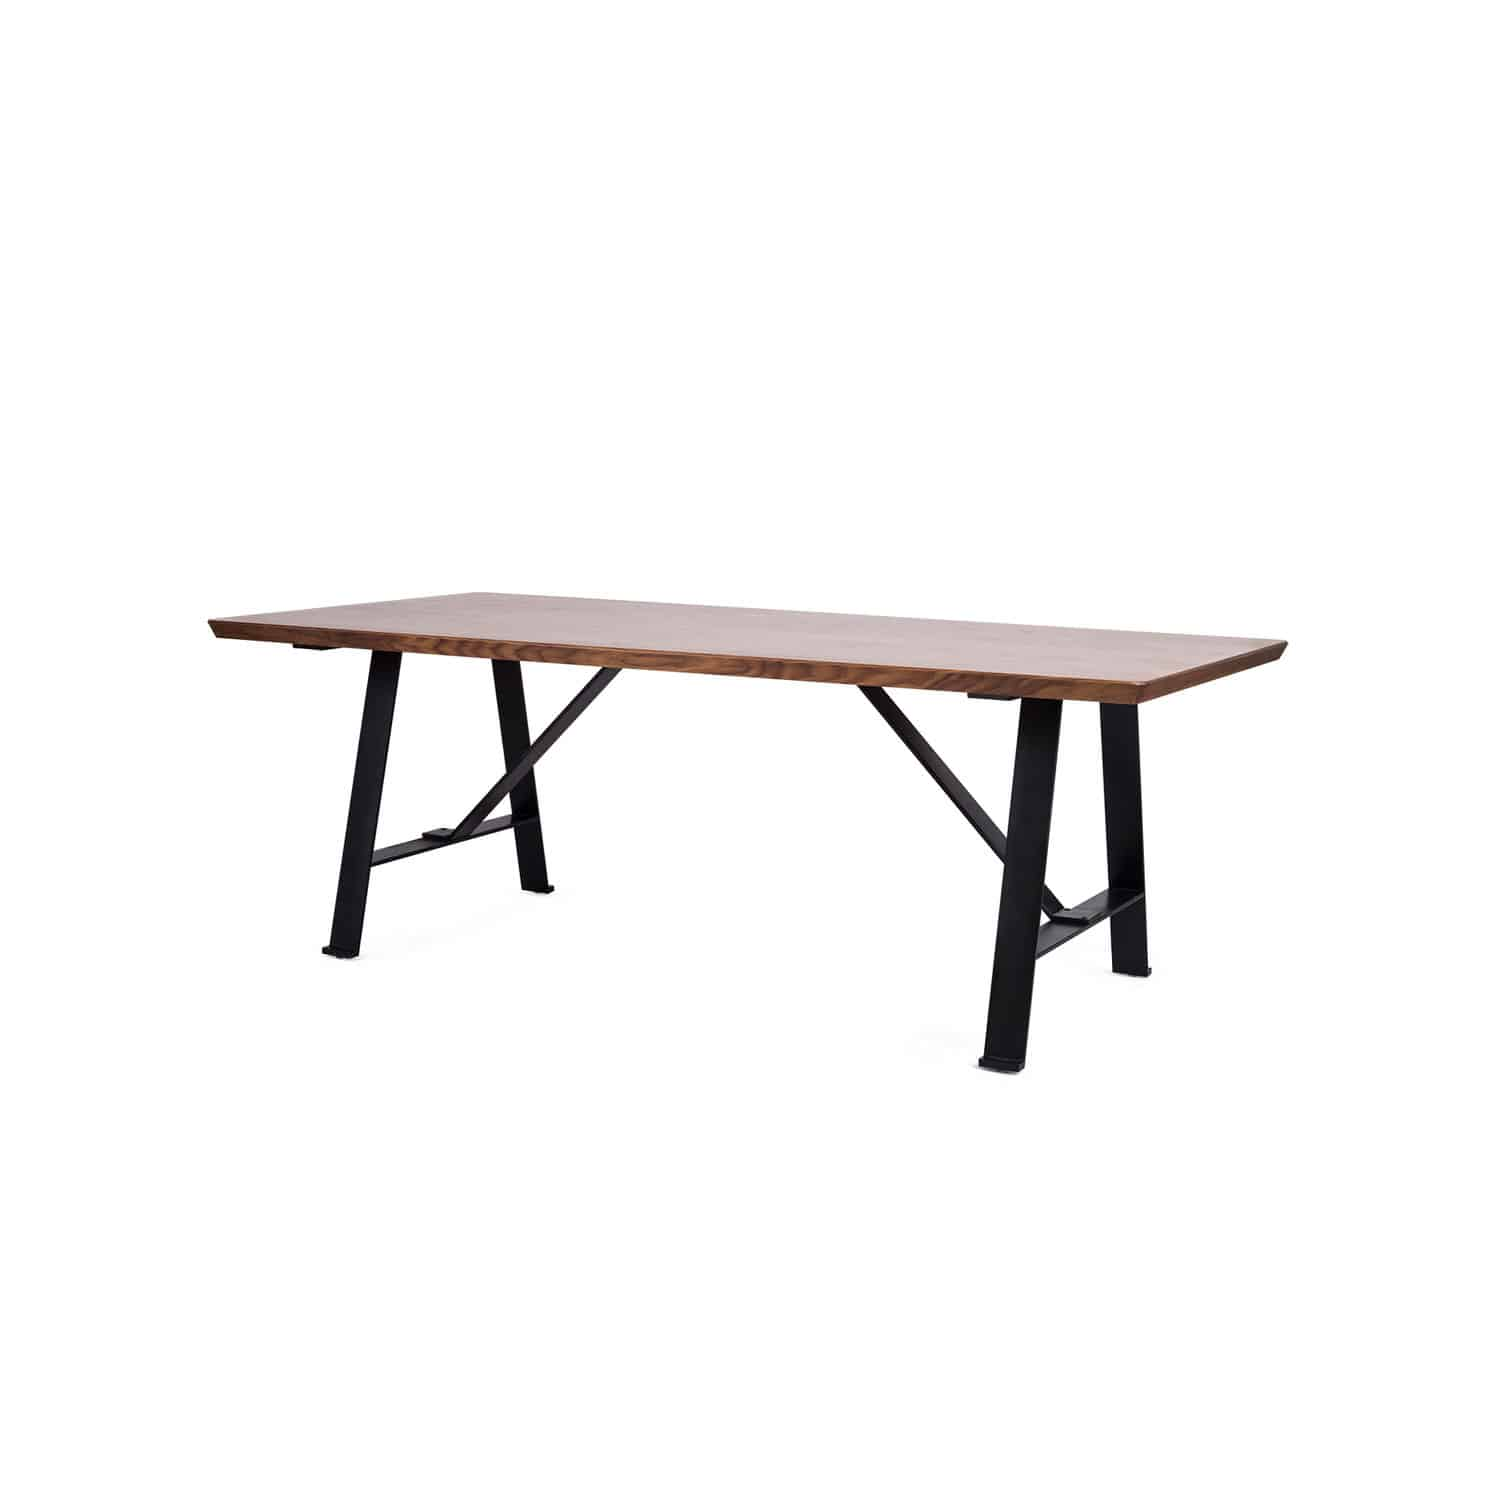 Miraculous Contemporary Dining Table Steel Laminate Rectangular Gmtry Best Dining Table And Chair Ideas Images Gmtryco